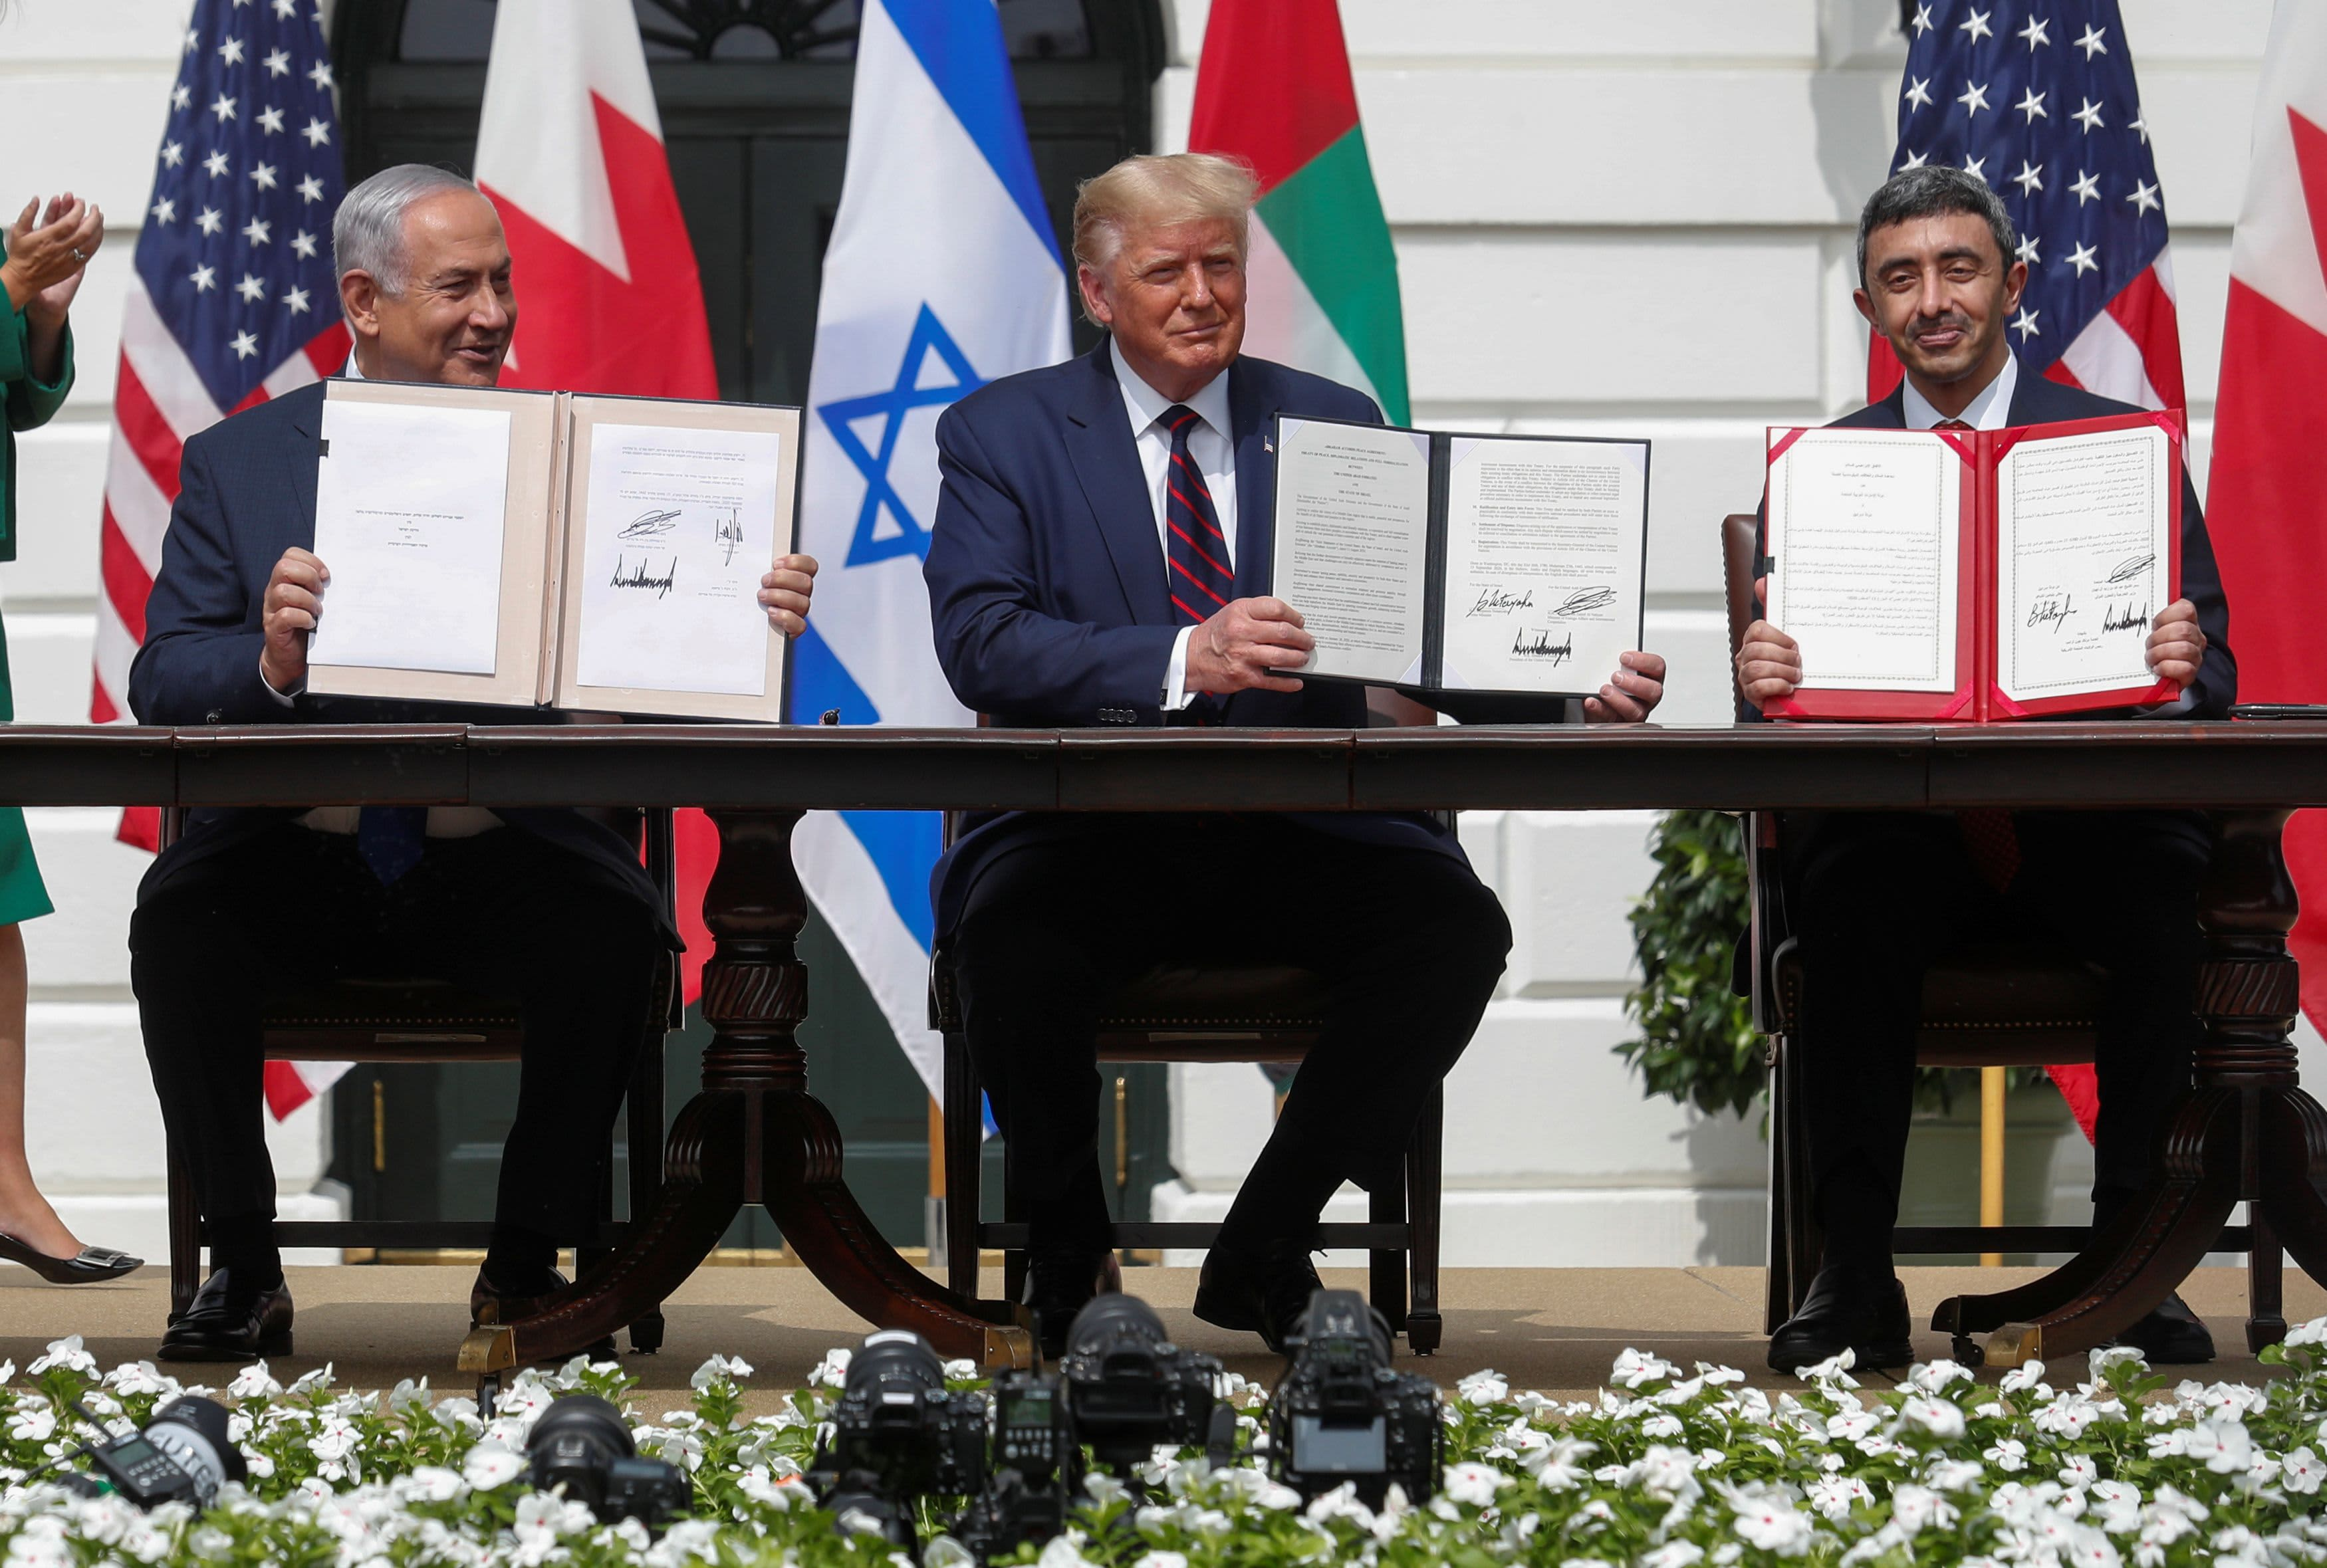 Saudi Arabia is the 'white whale' of Israel's Middle East peace deals Jerusalem official says – CNBC